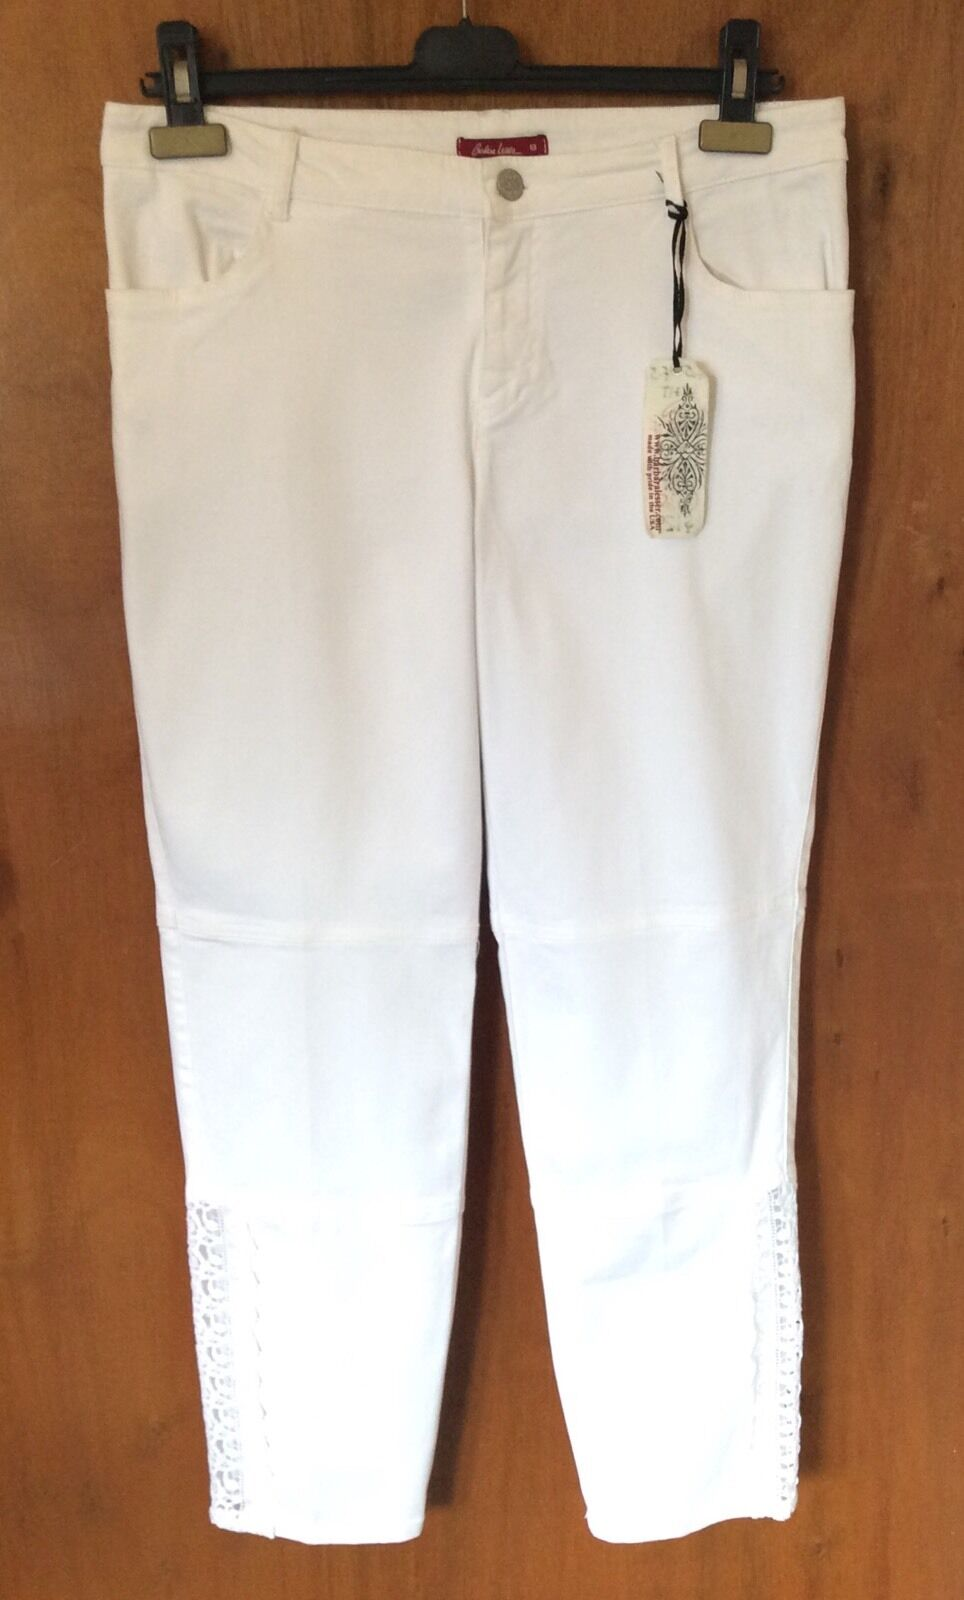 BARBARA LESSER White Pants Size 8 Cropped Ankle Straight Leg Lace Insert Casual